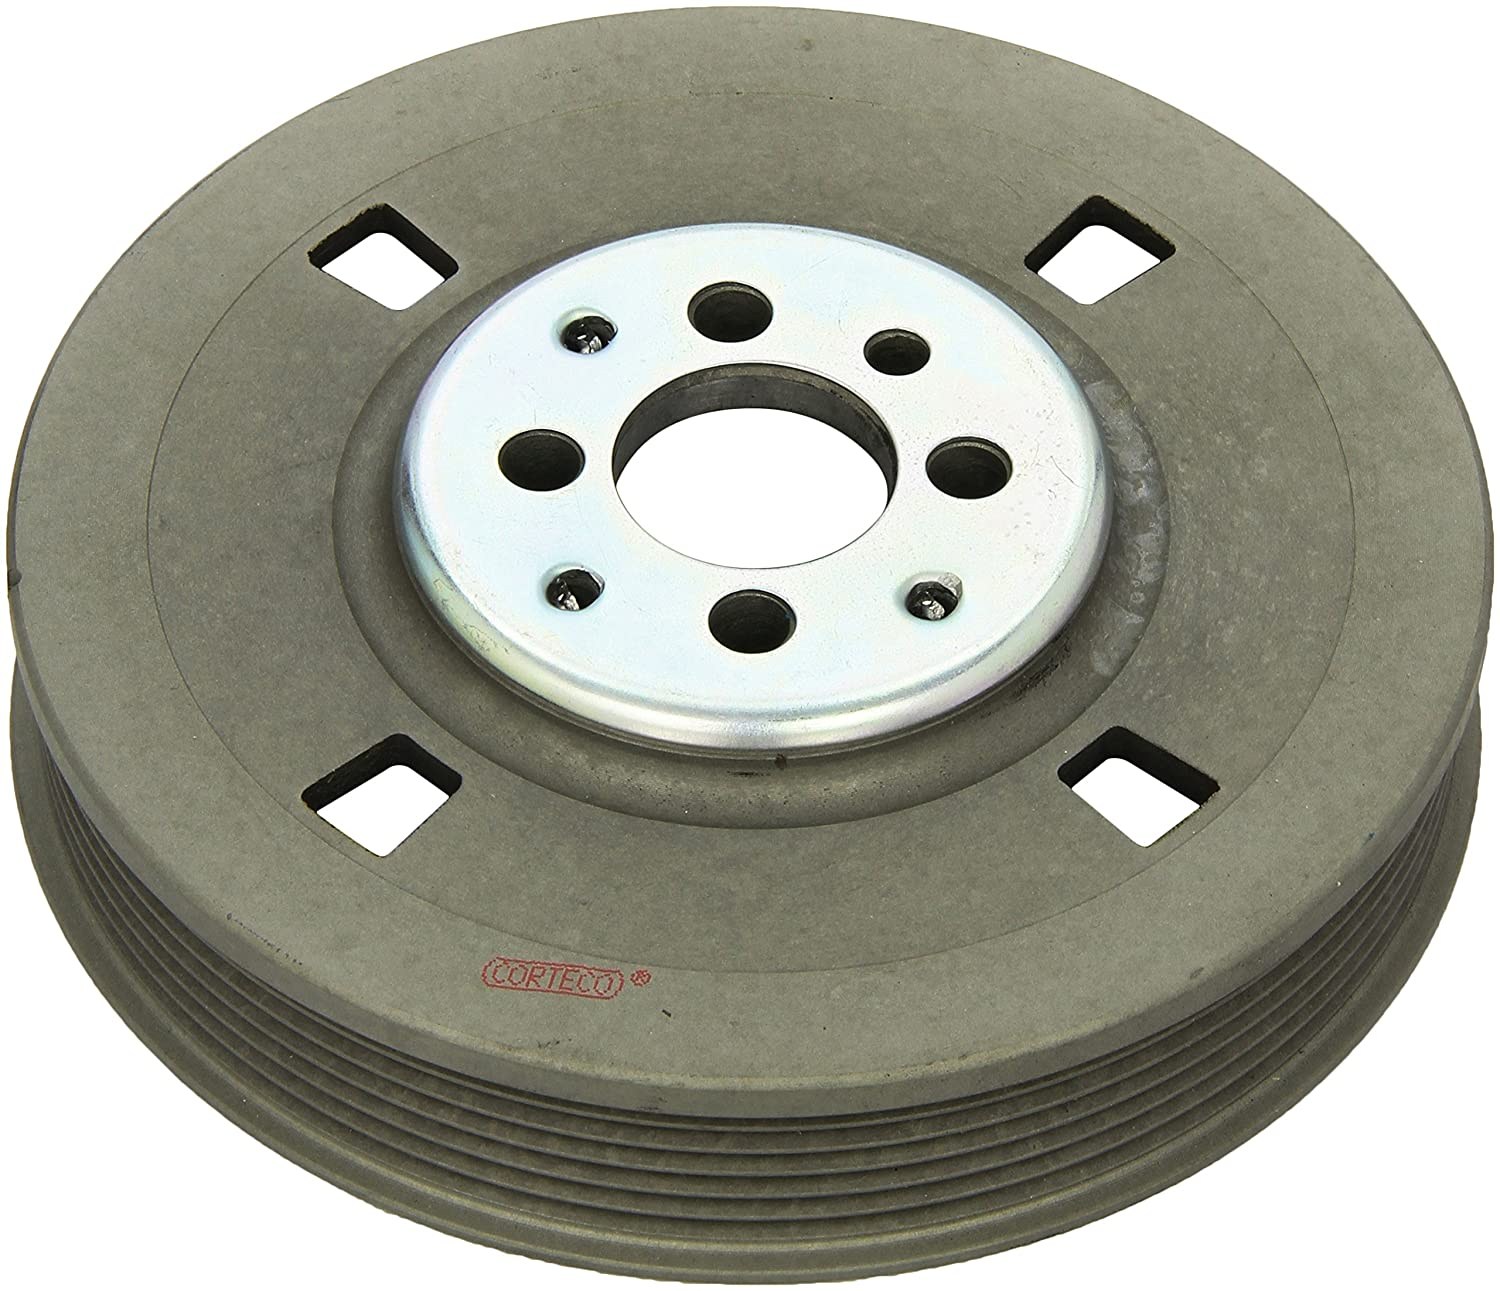 Corteco 80000204 Crankshaft Pulley 140_80000204